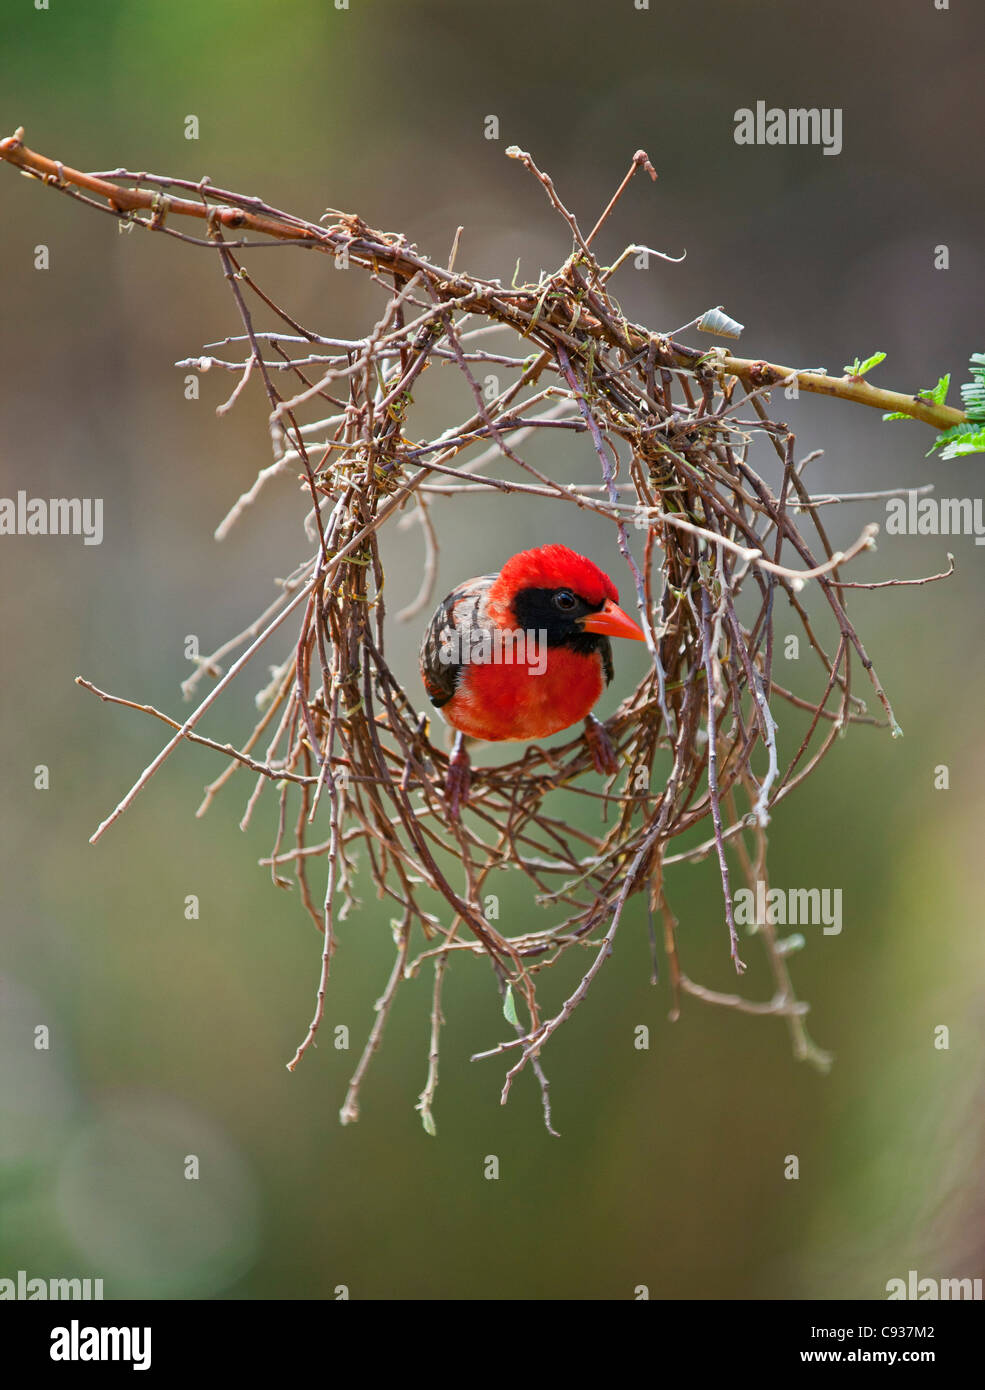 A red-headed Weaver building its nest. - Stock Image